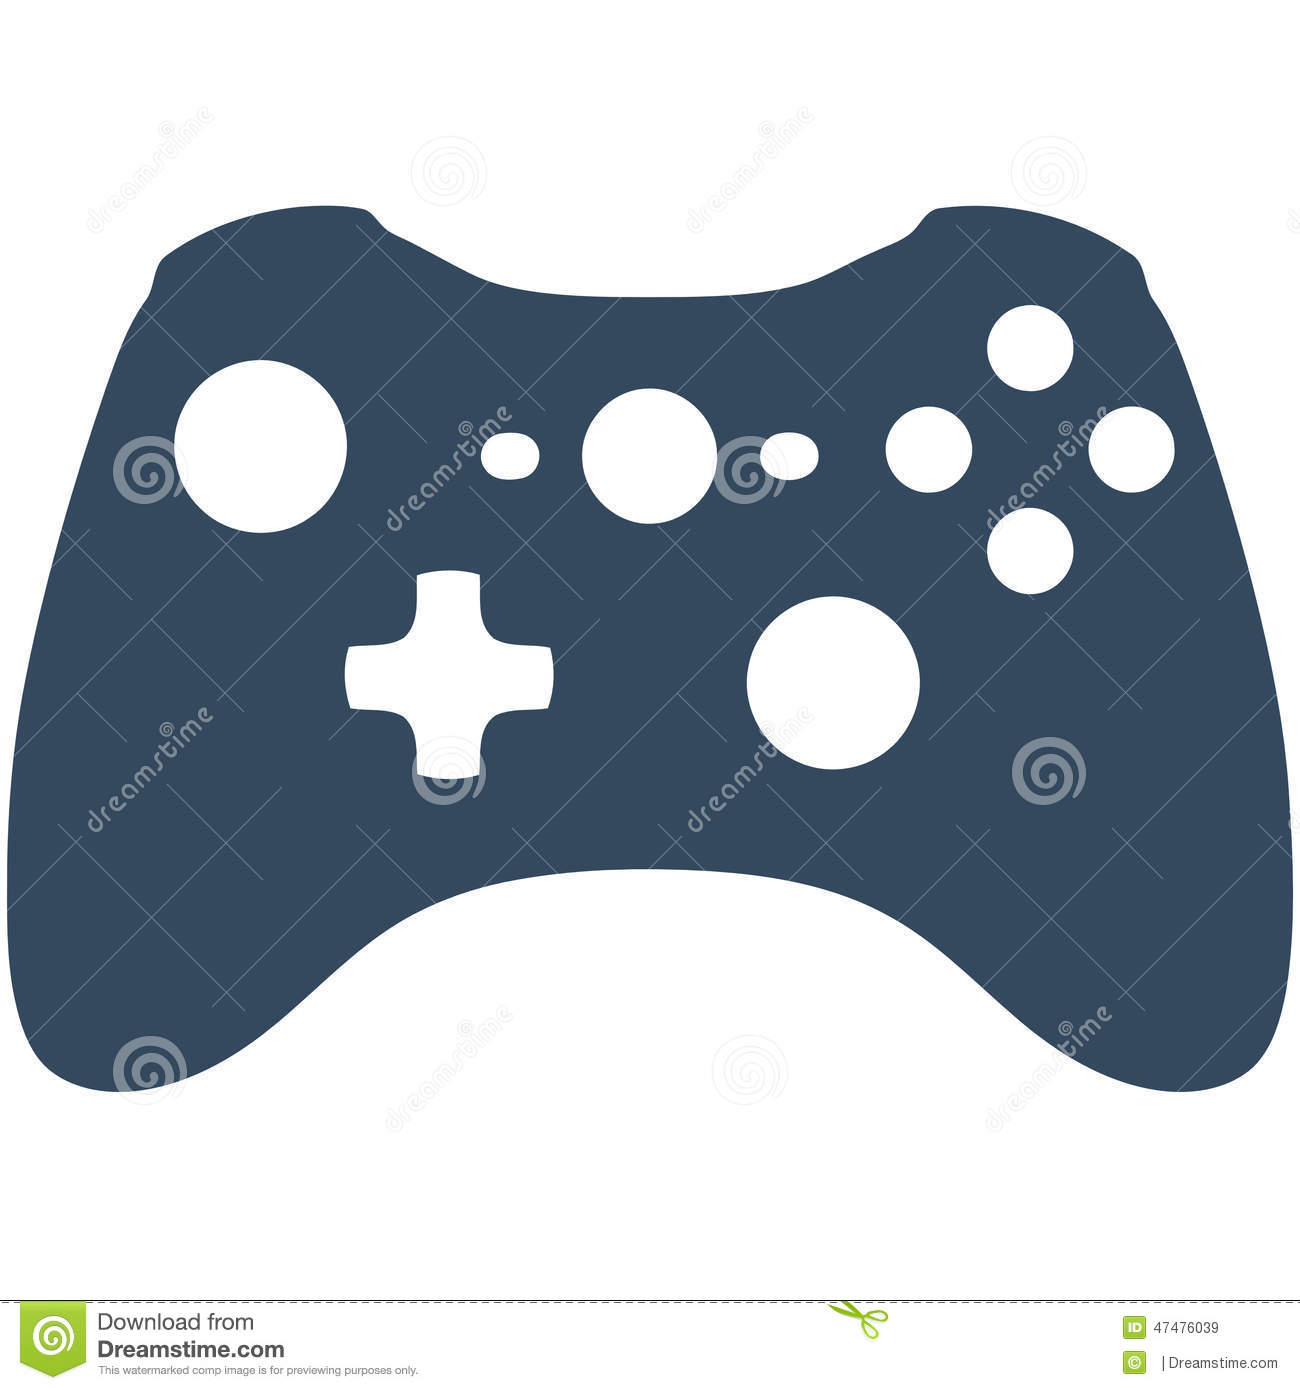 Xbox controller icon vector simple images